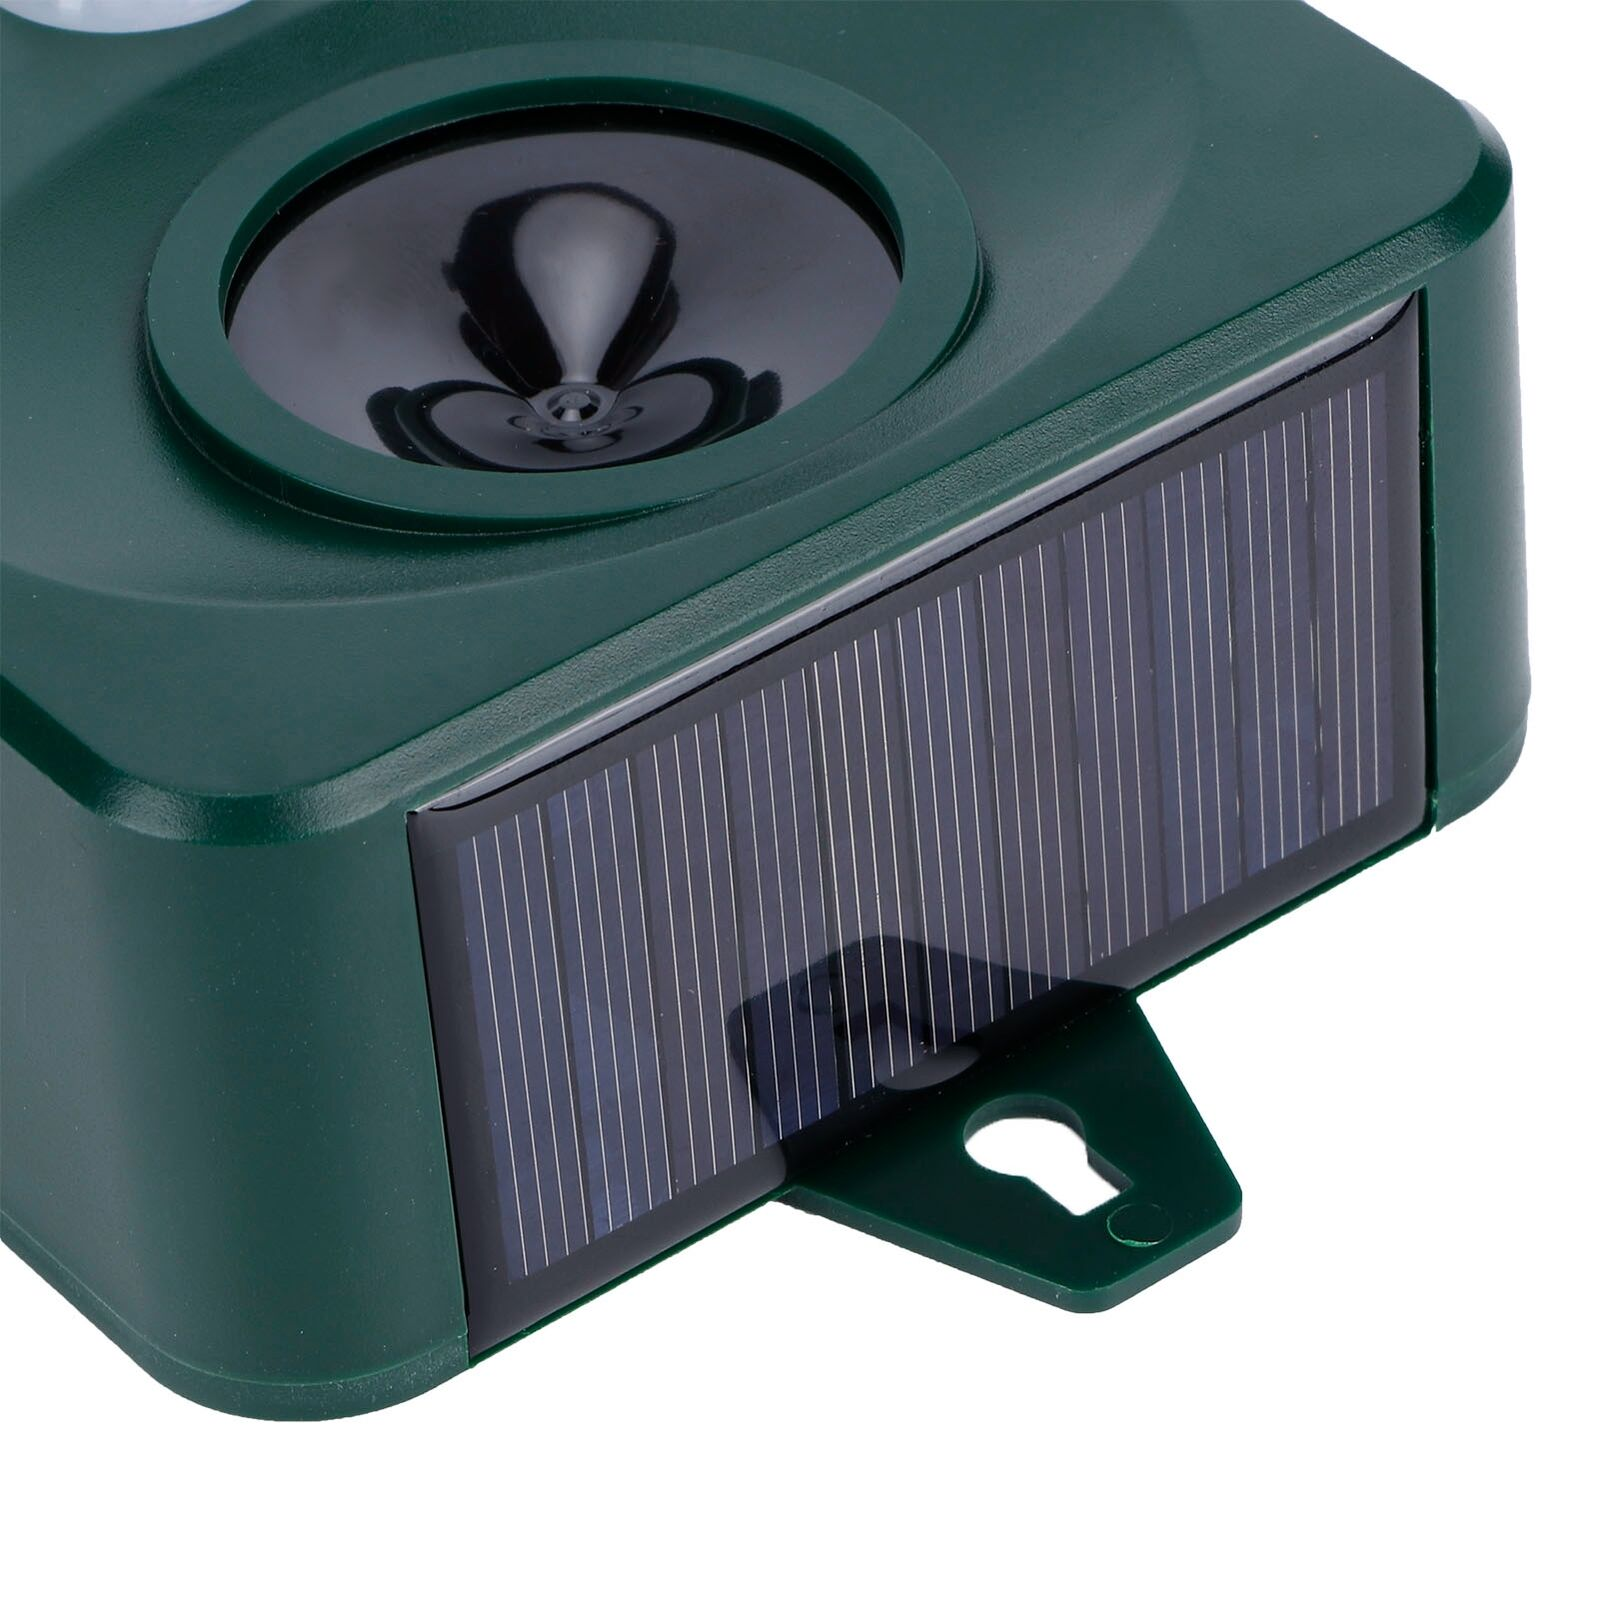 Solar Bird Repellent Outdoor USB Ultrasonic Mouse Insect Repeller With LED GF